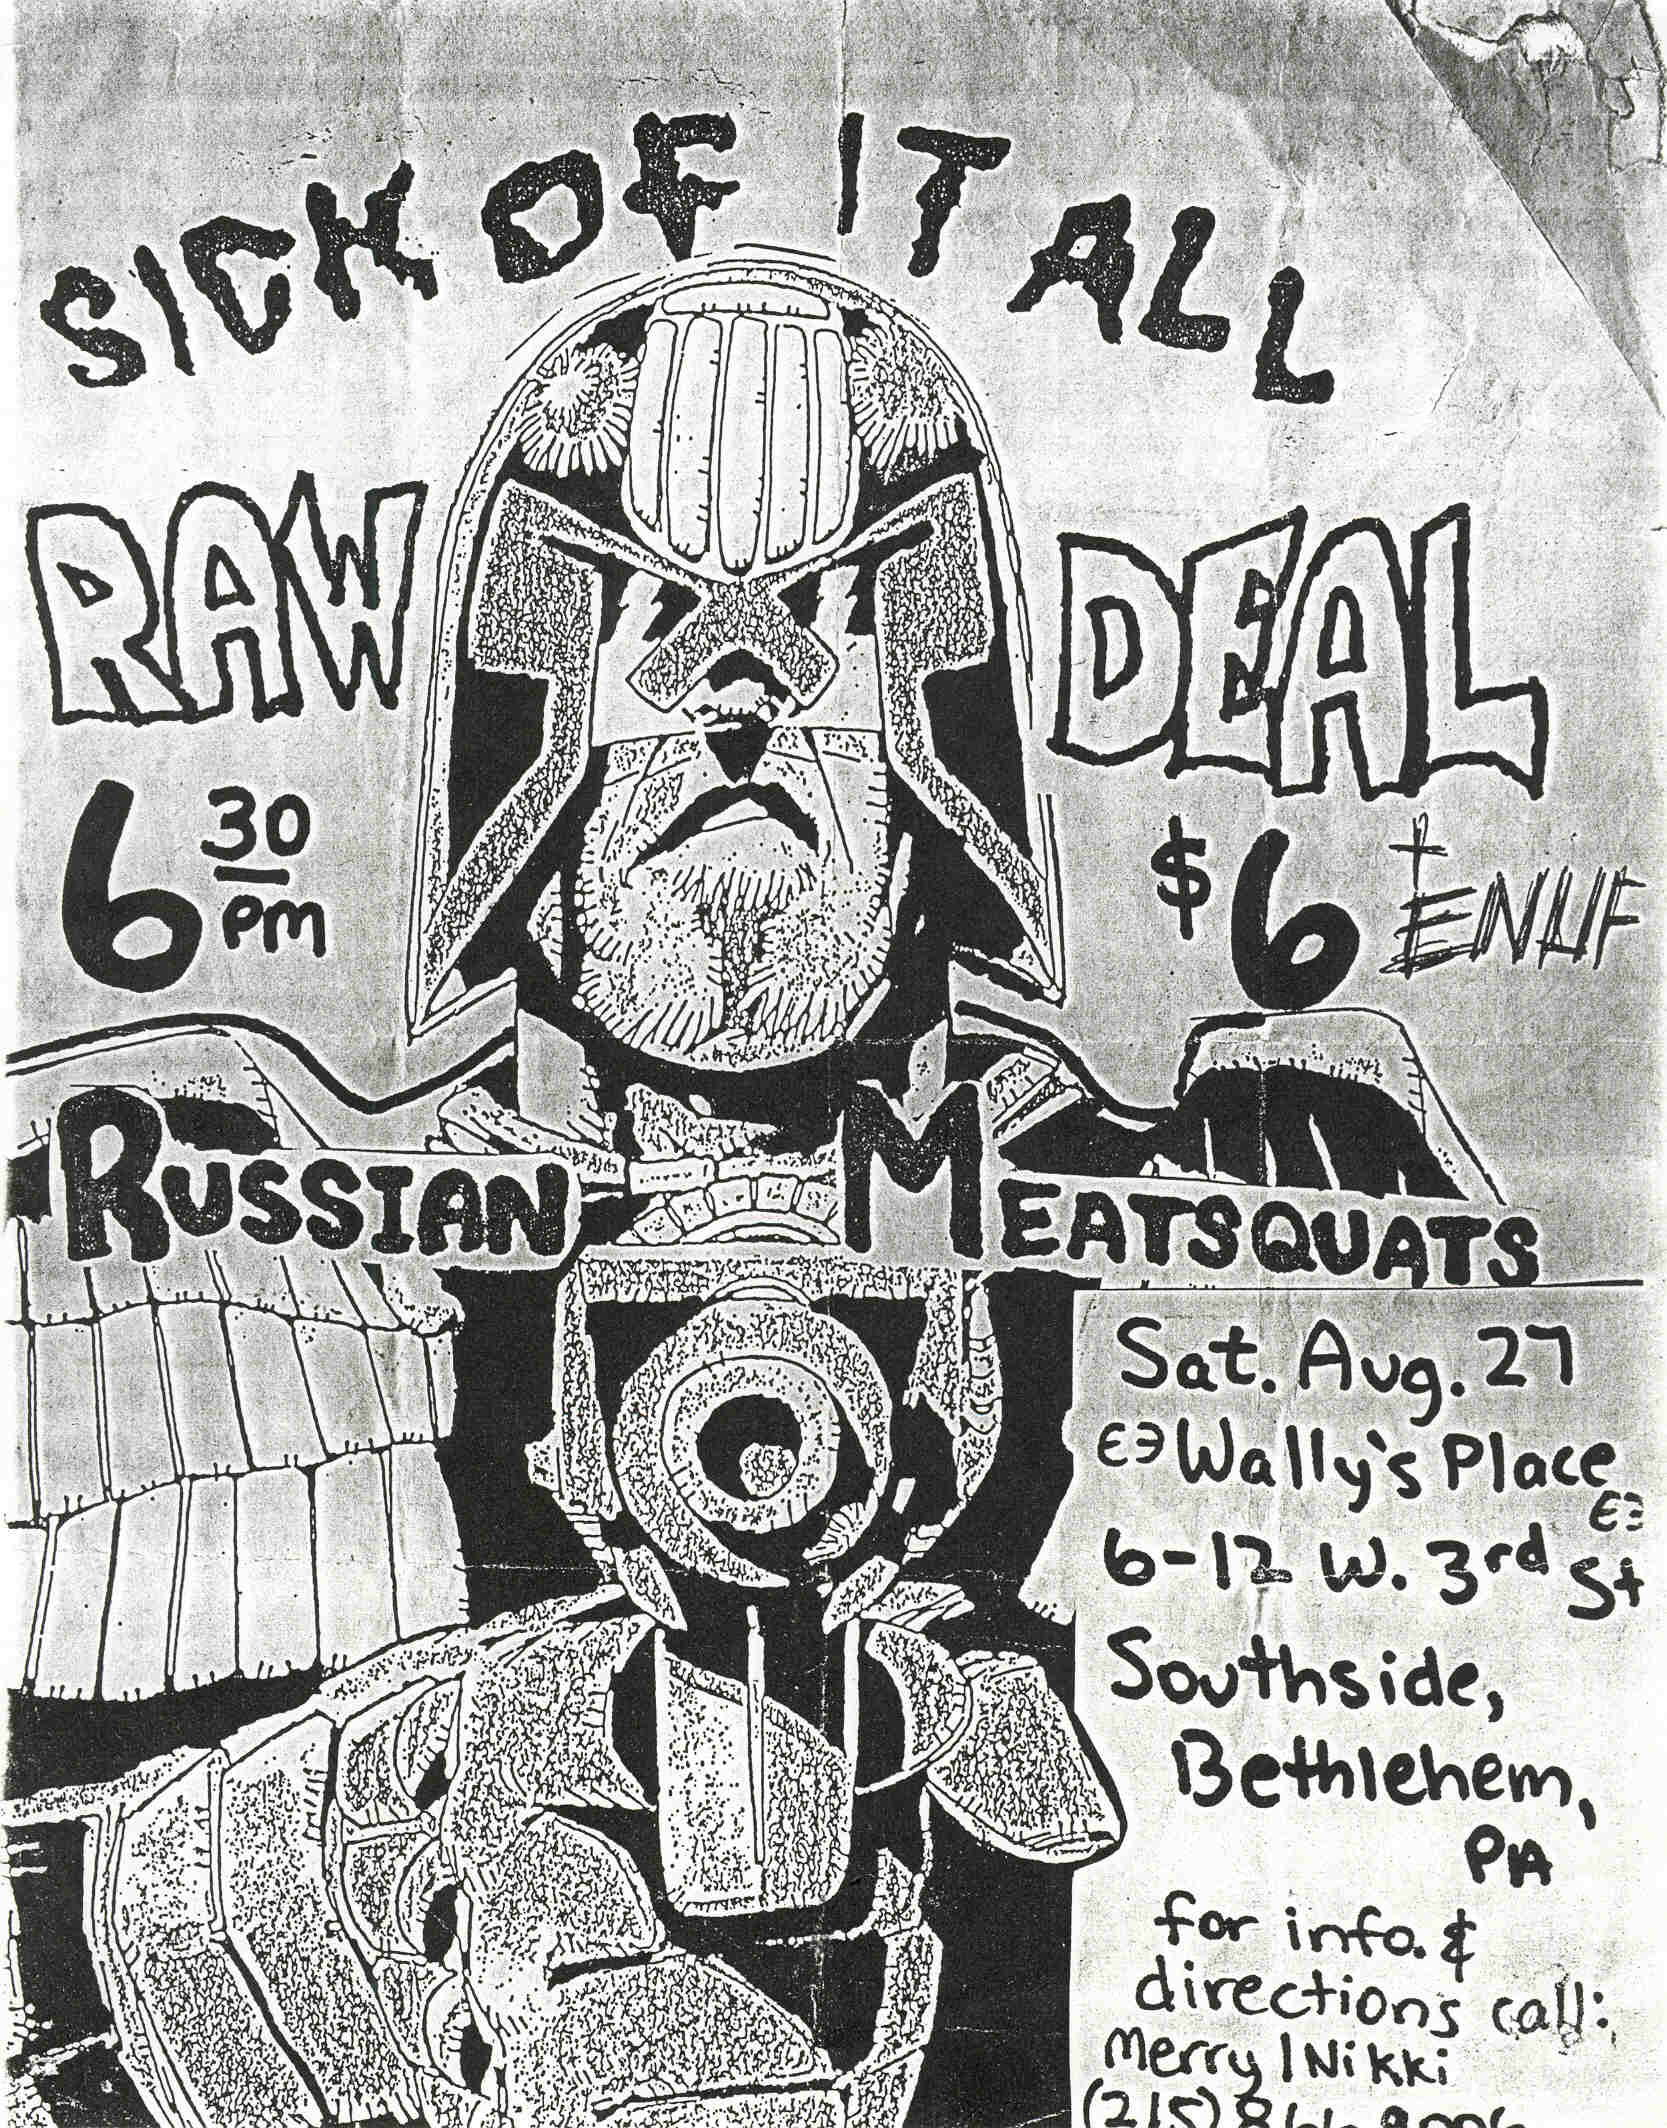 Sick Of It All-Raw Deal-Enuf-Russian Meat Squats @ Wally's Place Bethlehem PA 8-27-88